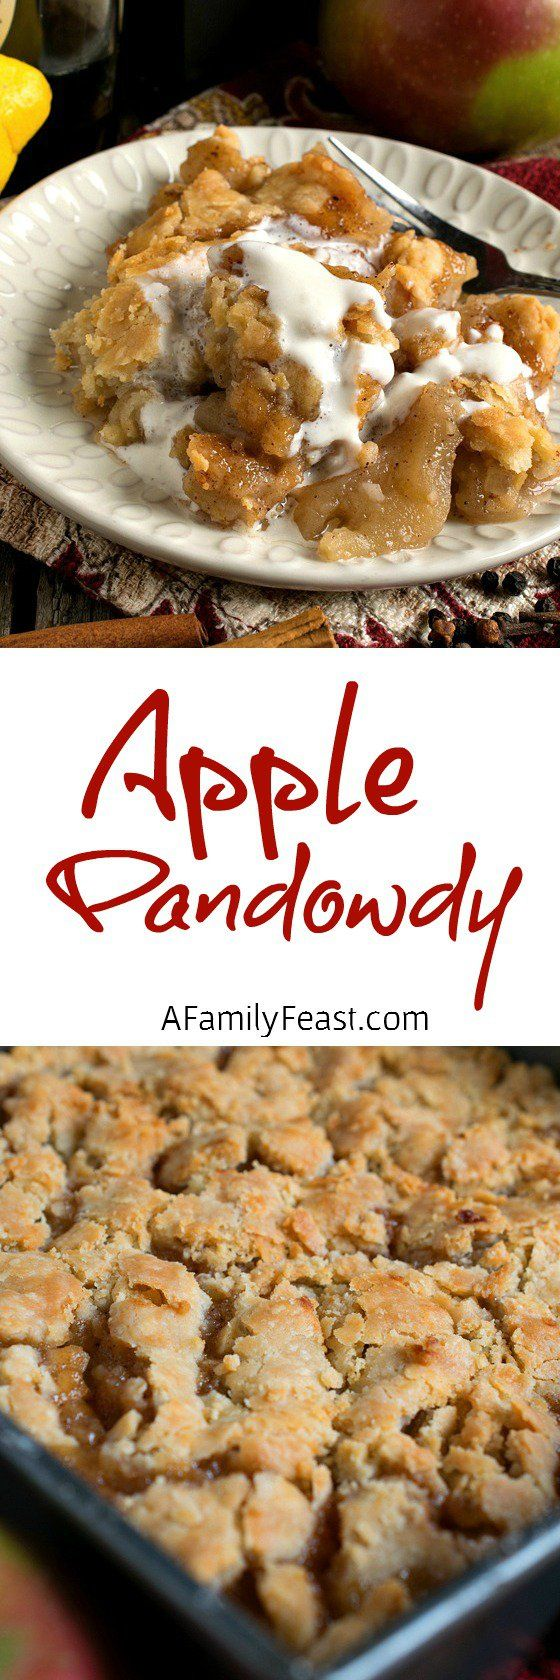 Apple Pandowdy - A vintage New England recipe, this apple dessert has a rich, sweet and very distinctive flavor!